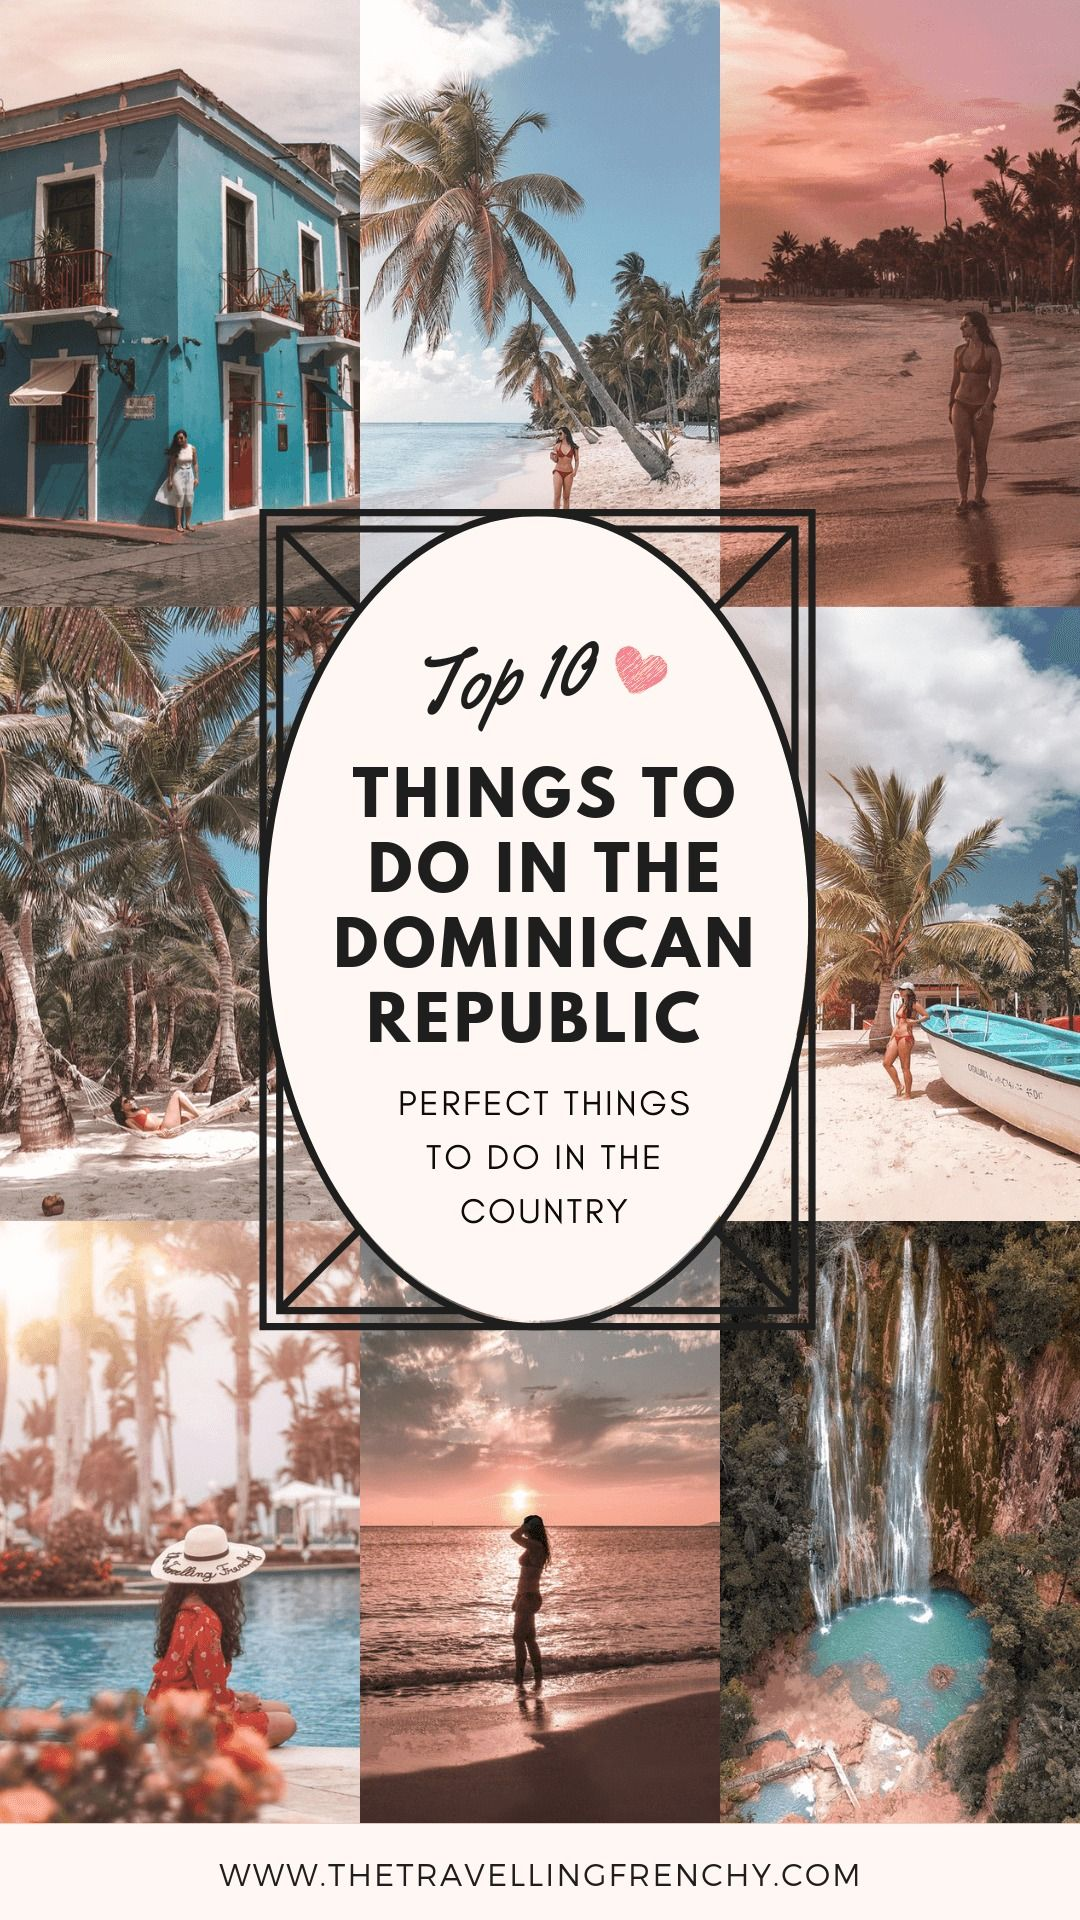 Top 10 Things To Do In The Dominican Republic In 2020 With Images Dominican Republic Travel Caribbean Travel Punta Cana Travel